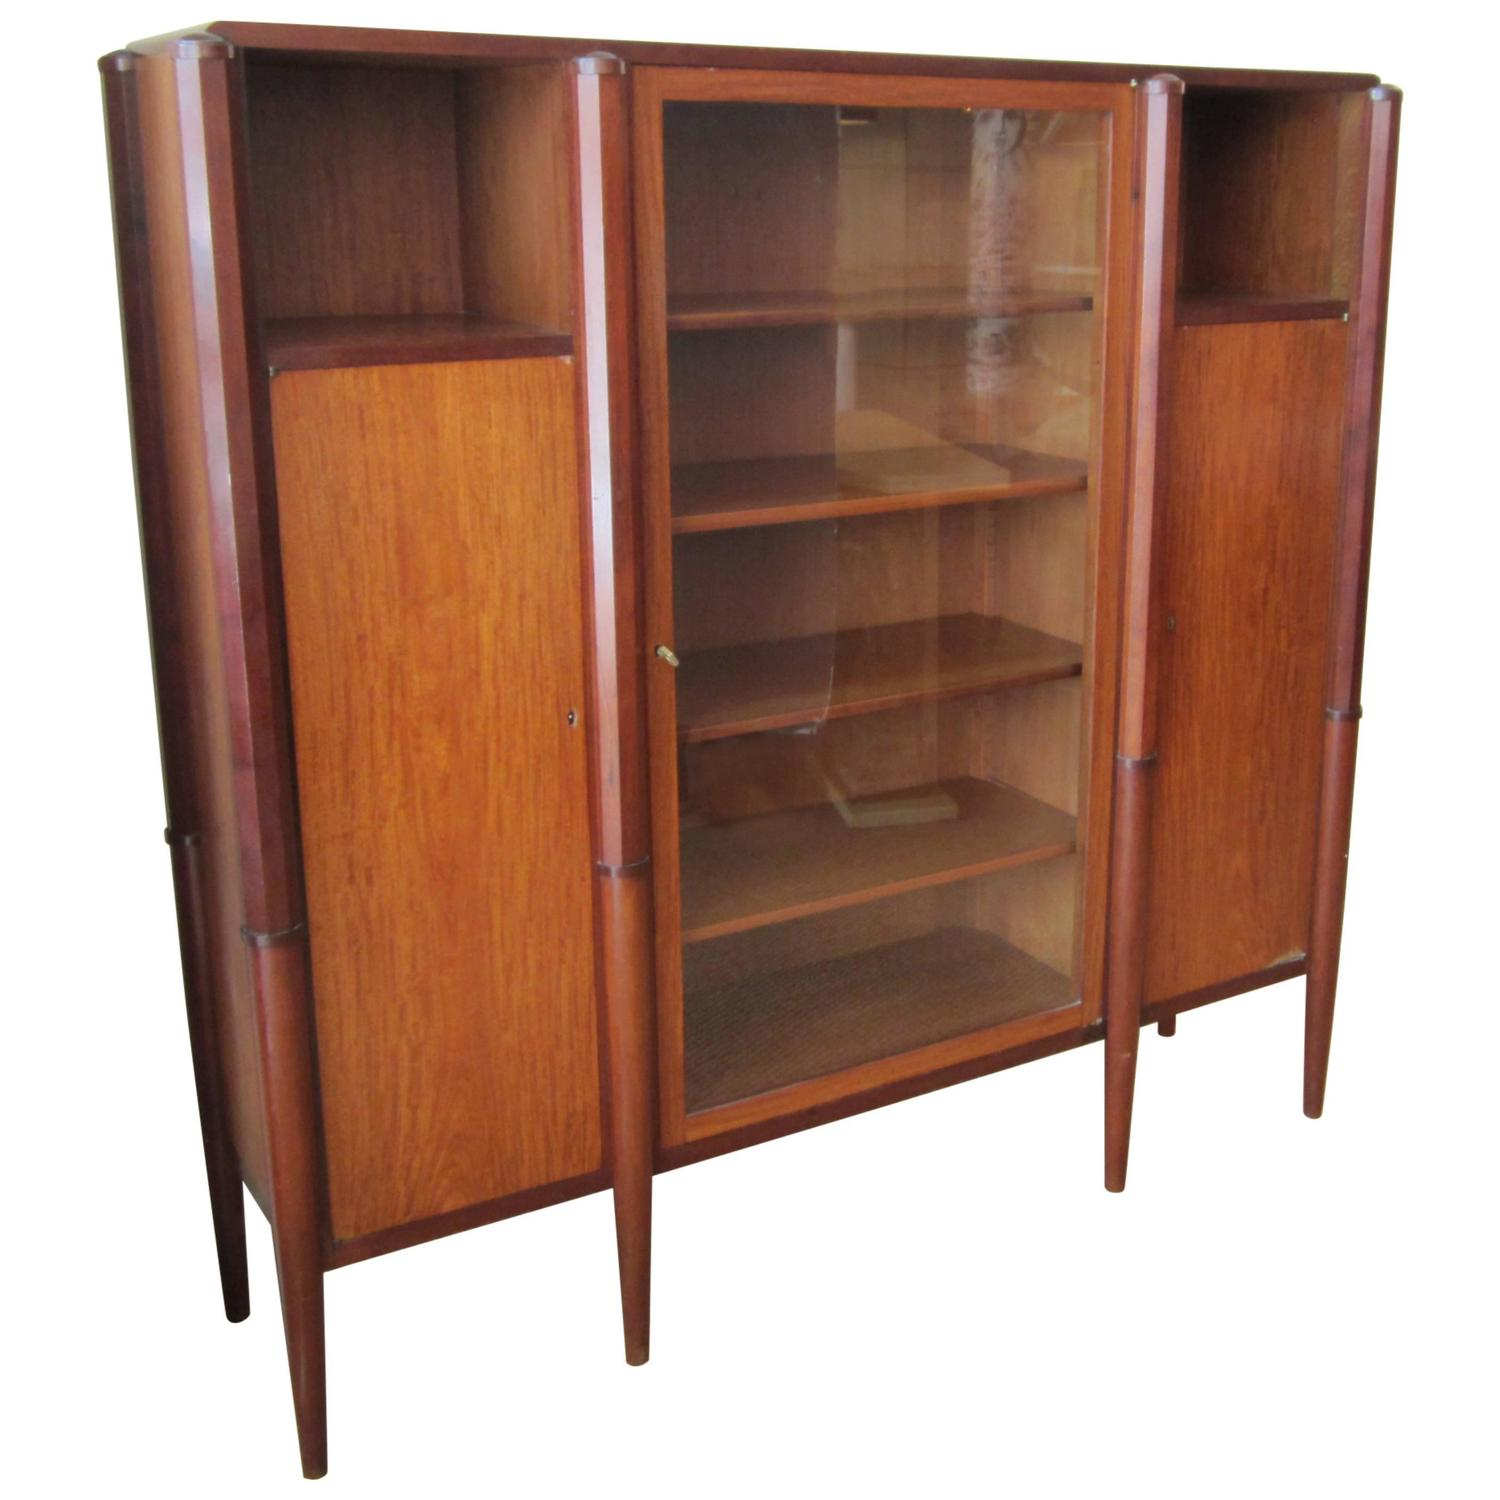 French Art Deco Book Case/ Cabinet Attributed to Maurice Dufrene - Antique And Vintage Bookcases - 3,048 For Sale At 1stdibs